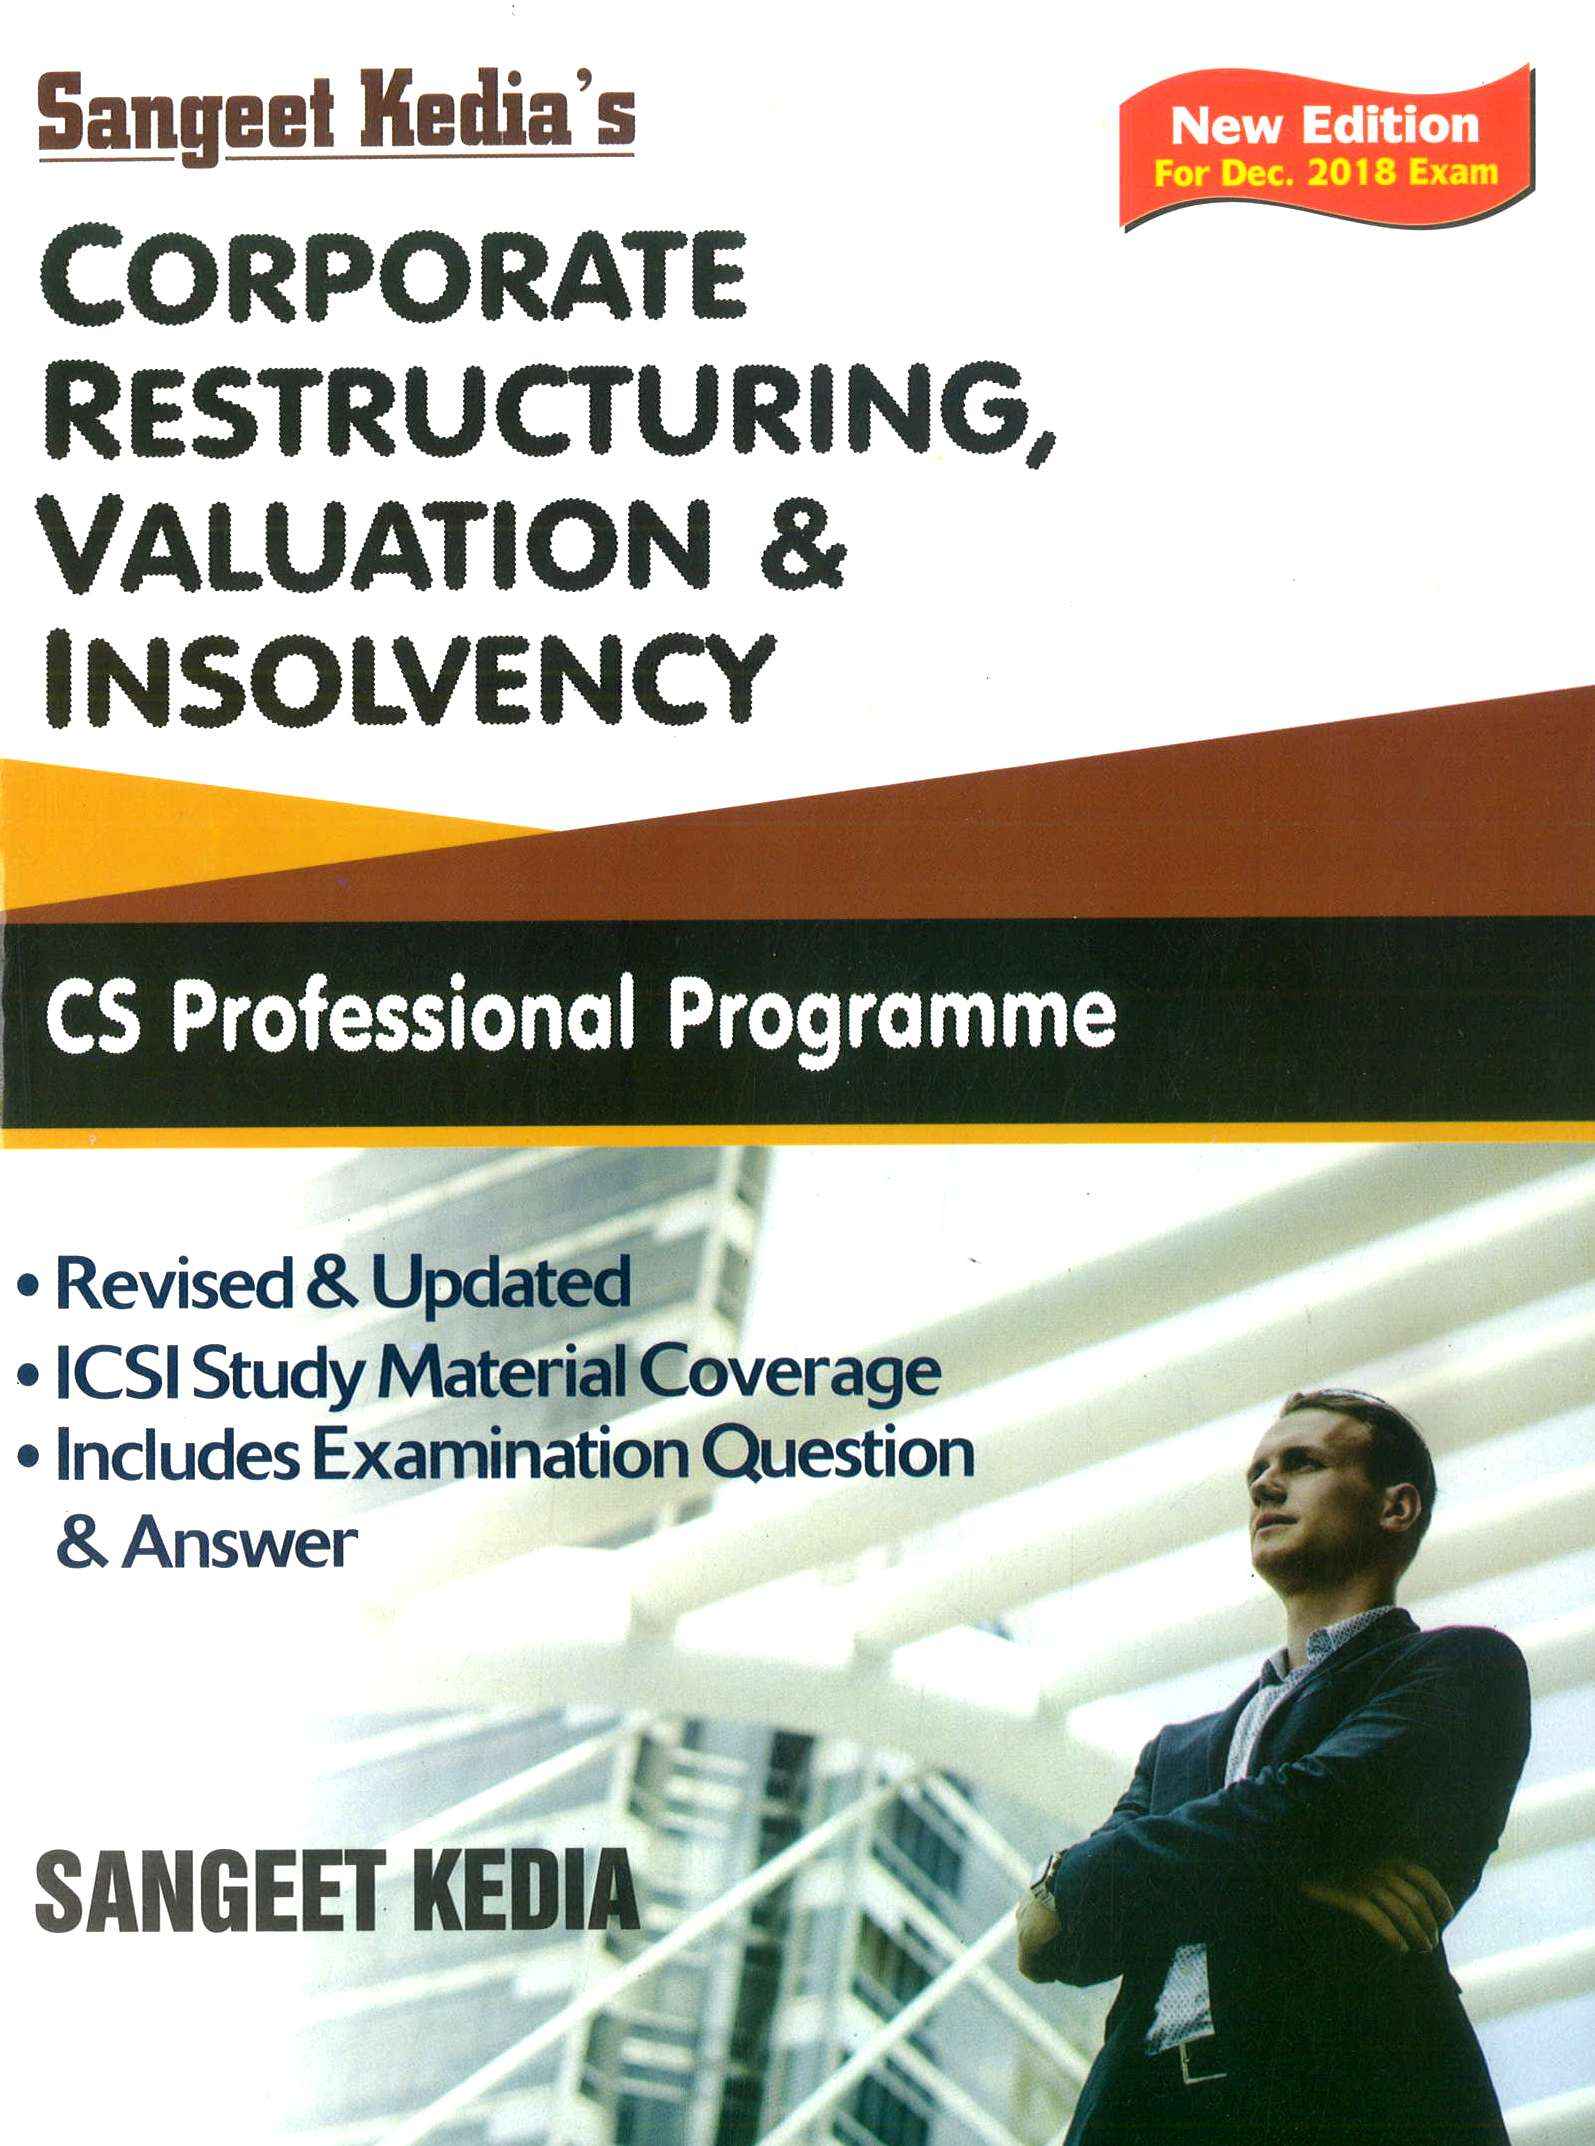 Pooja Law House Corporate Restructuring Valuation and Insolvency For CS Professional New Syllabus By Sangeet Kedia Applicable for Dec 2018 Exam (Pooja Law House Publishing) Edition 17th,June 2018